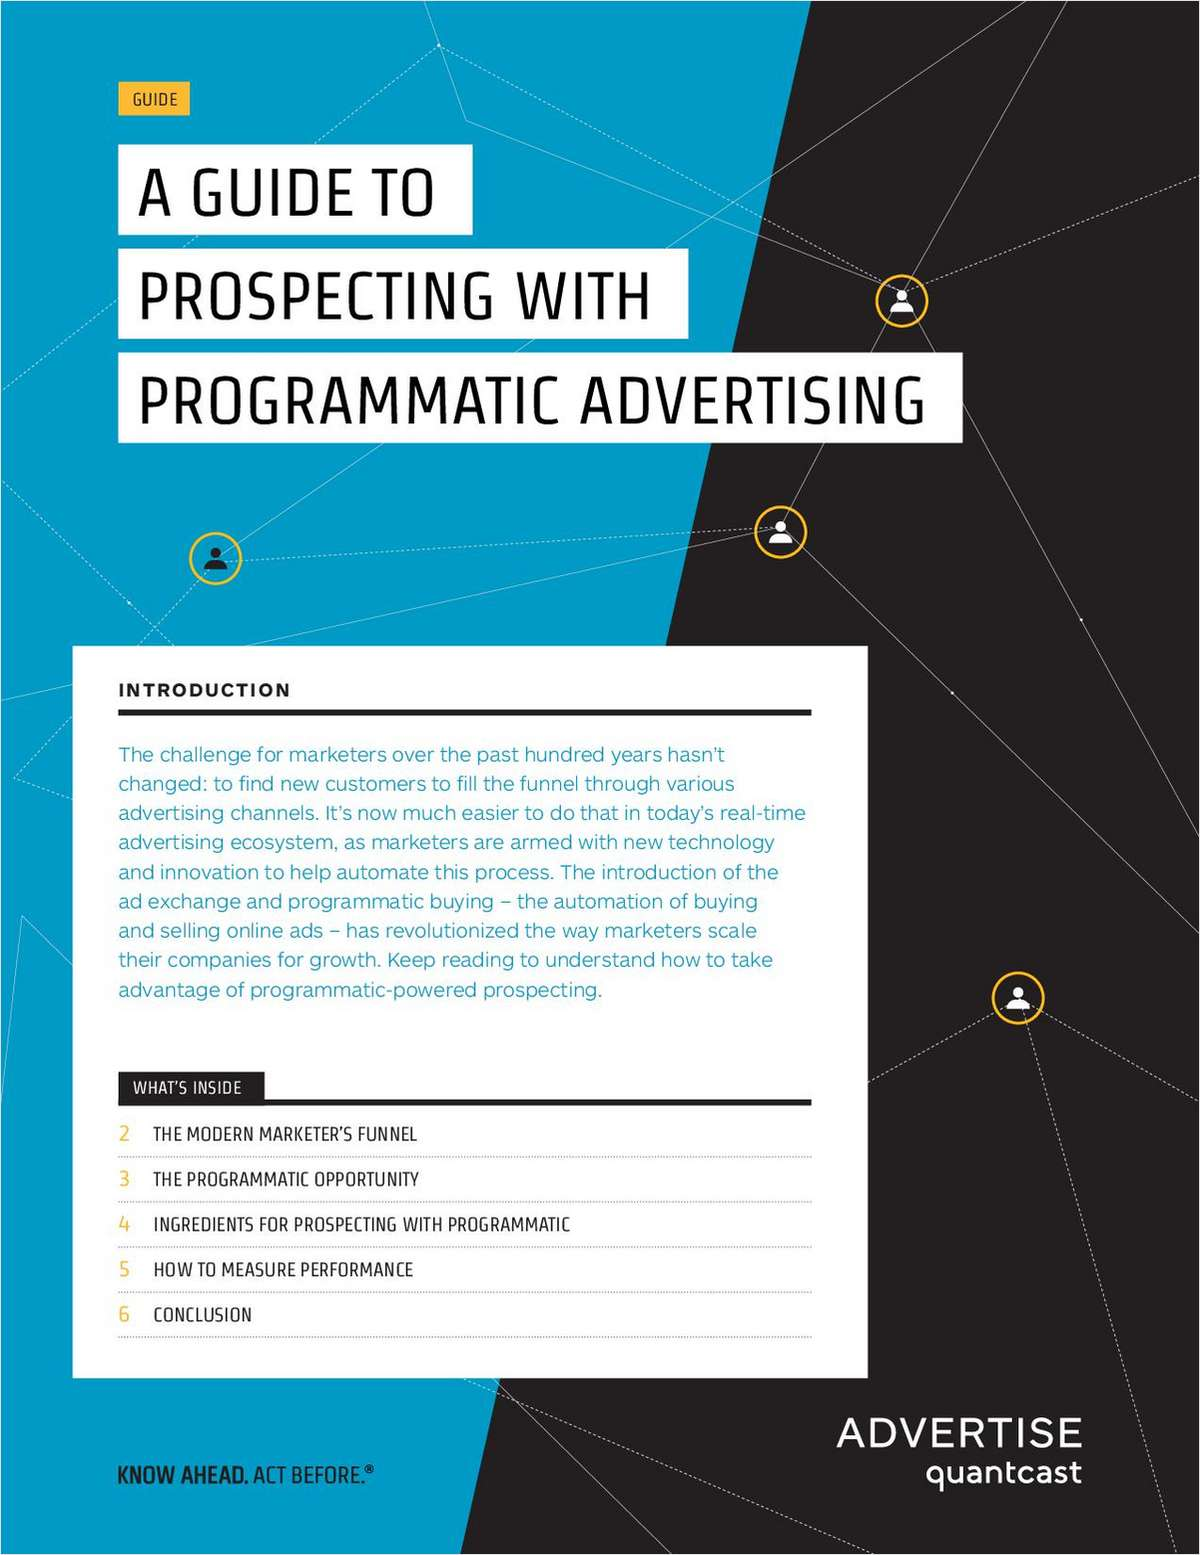 A Guide to Prospecting with Programmatic Advertising